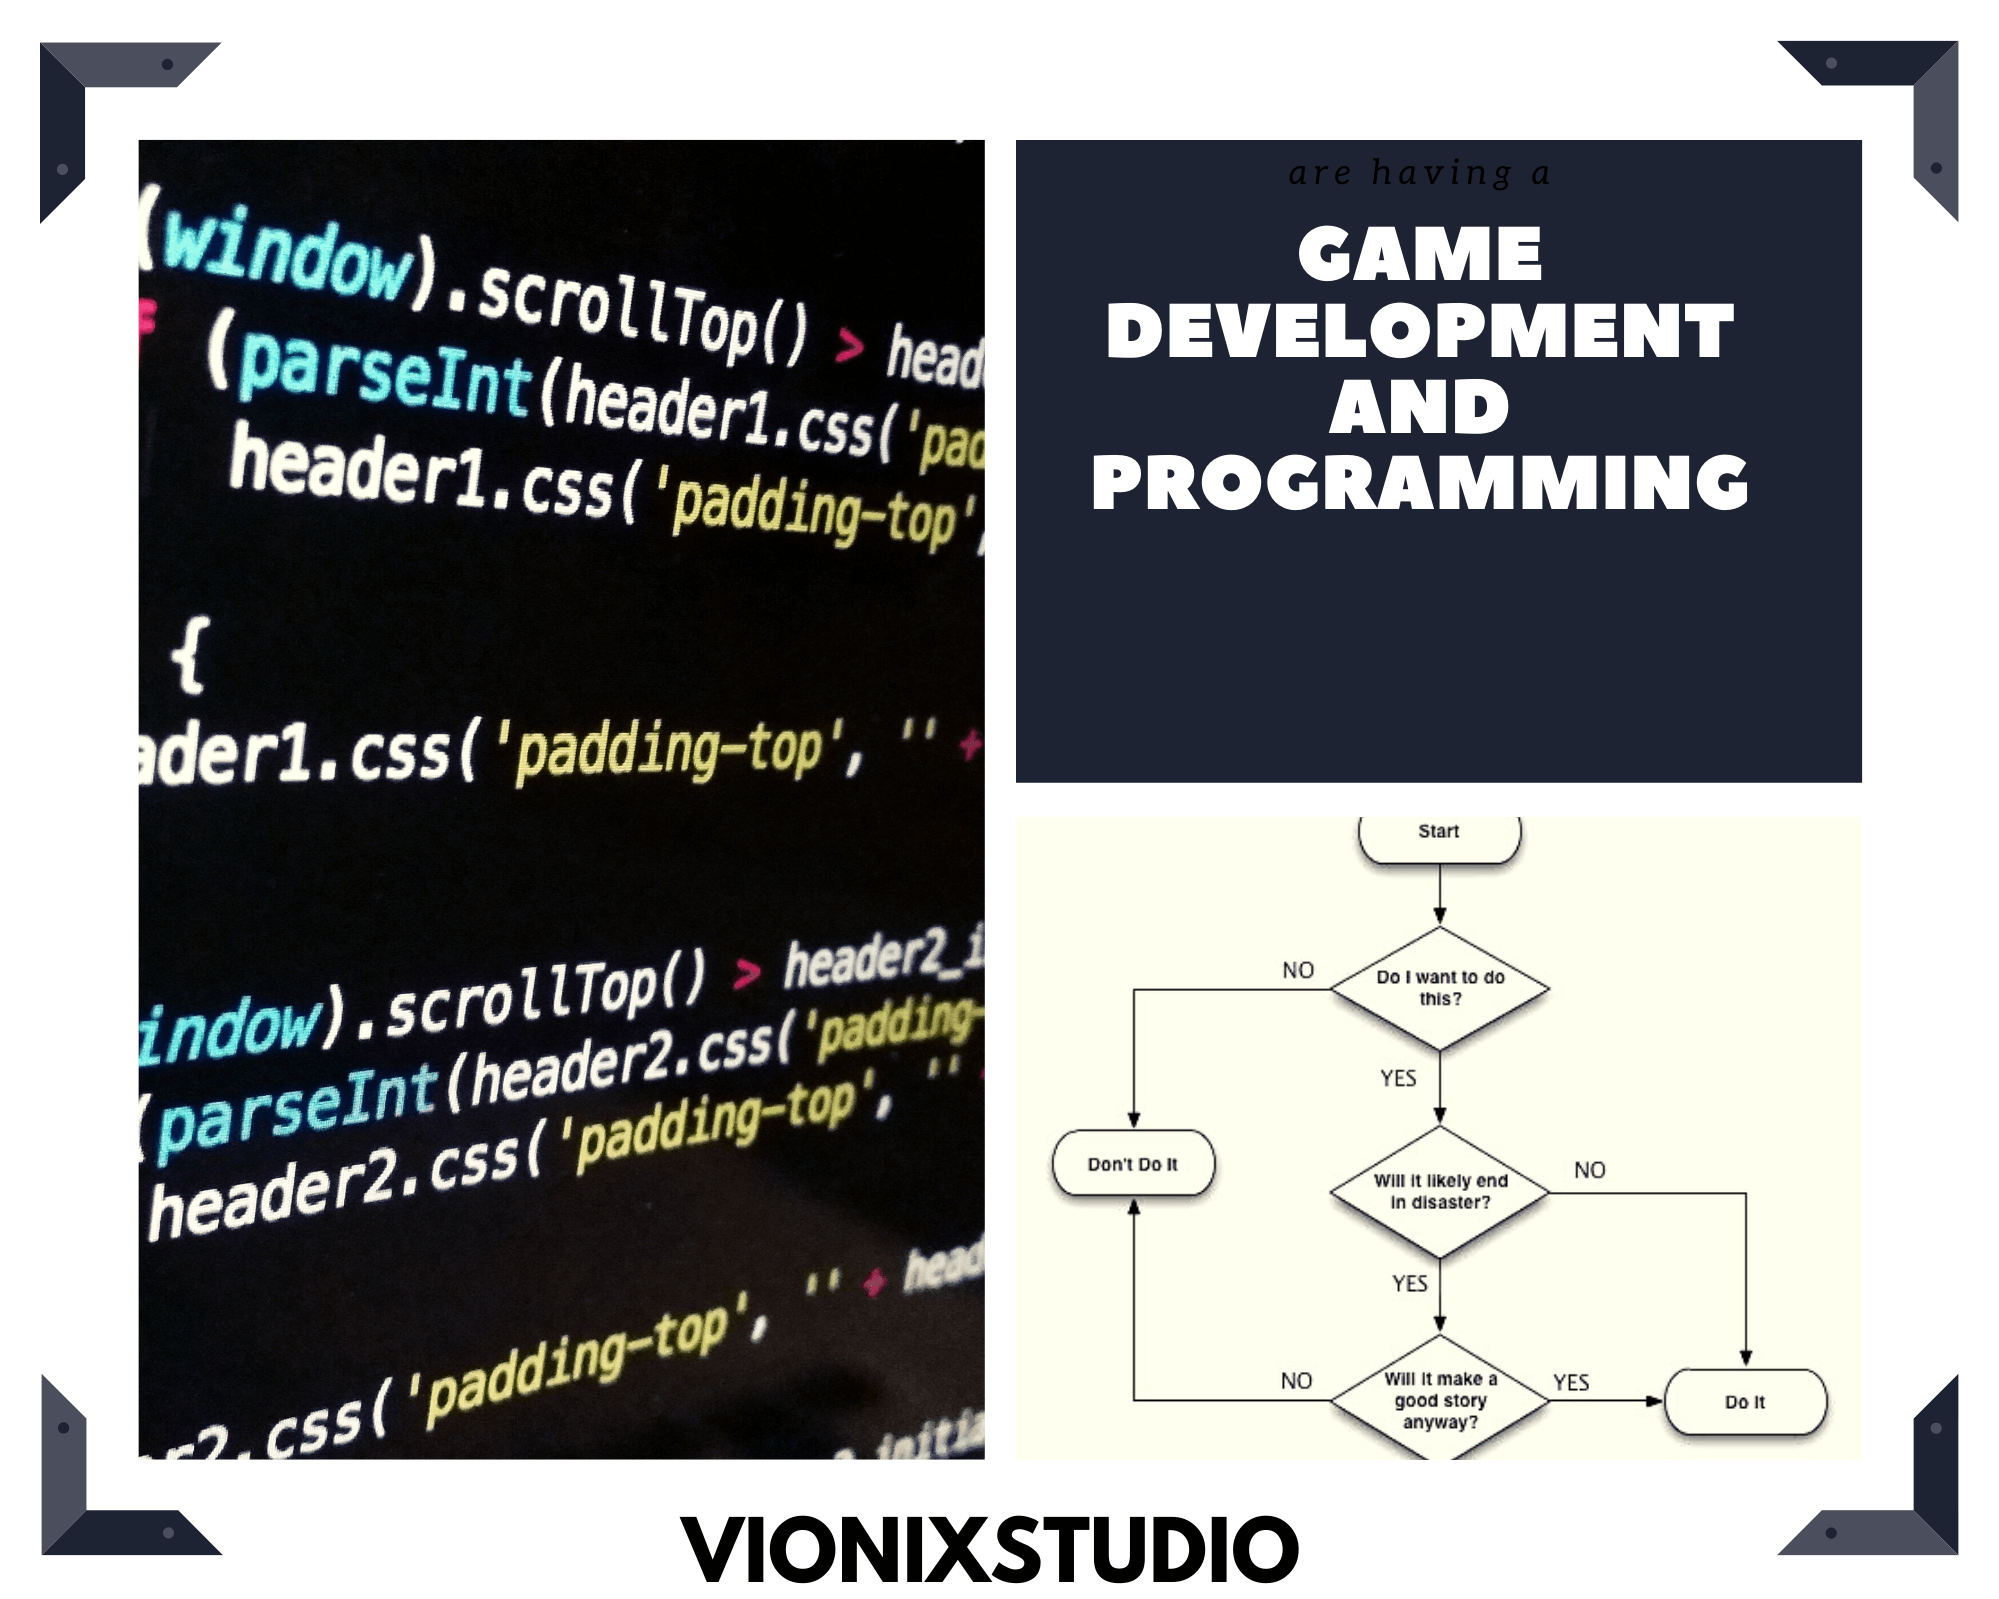 Game development and programming